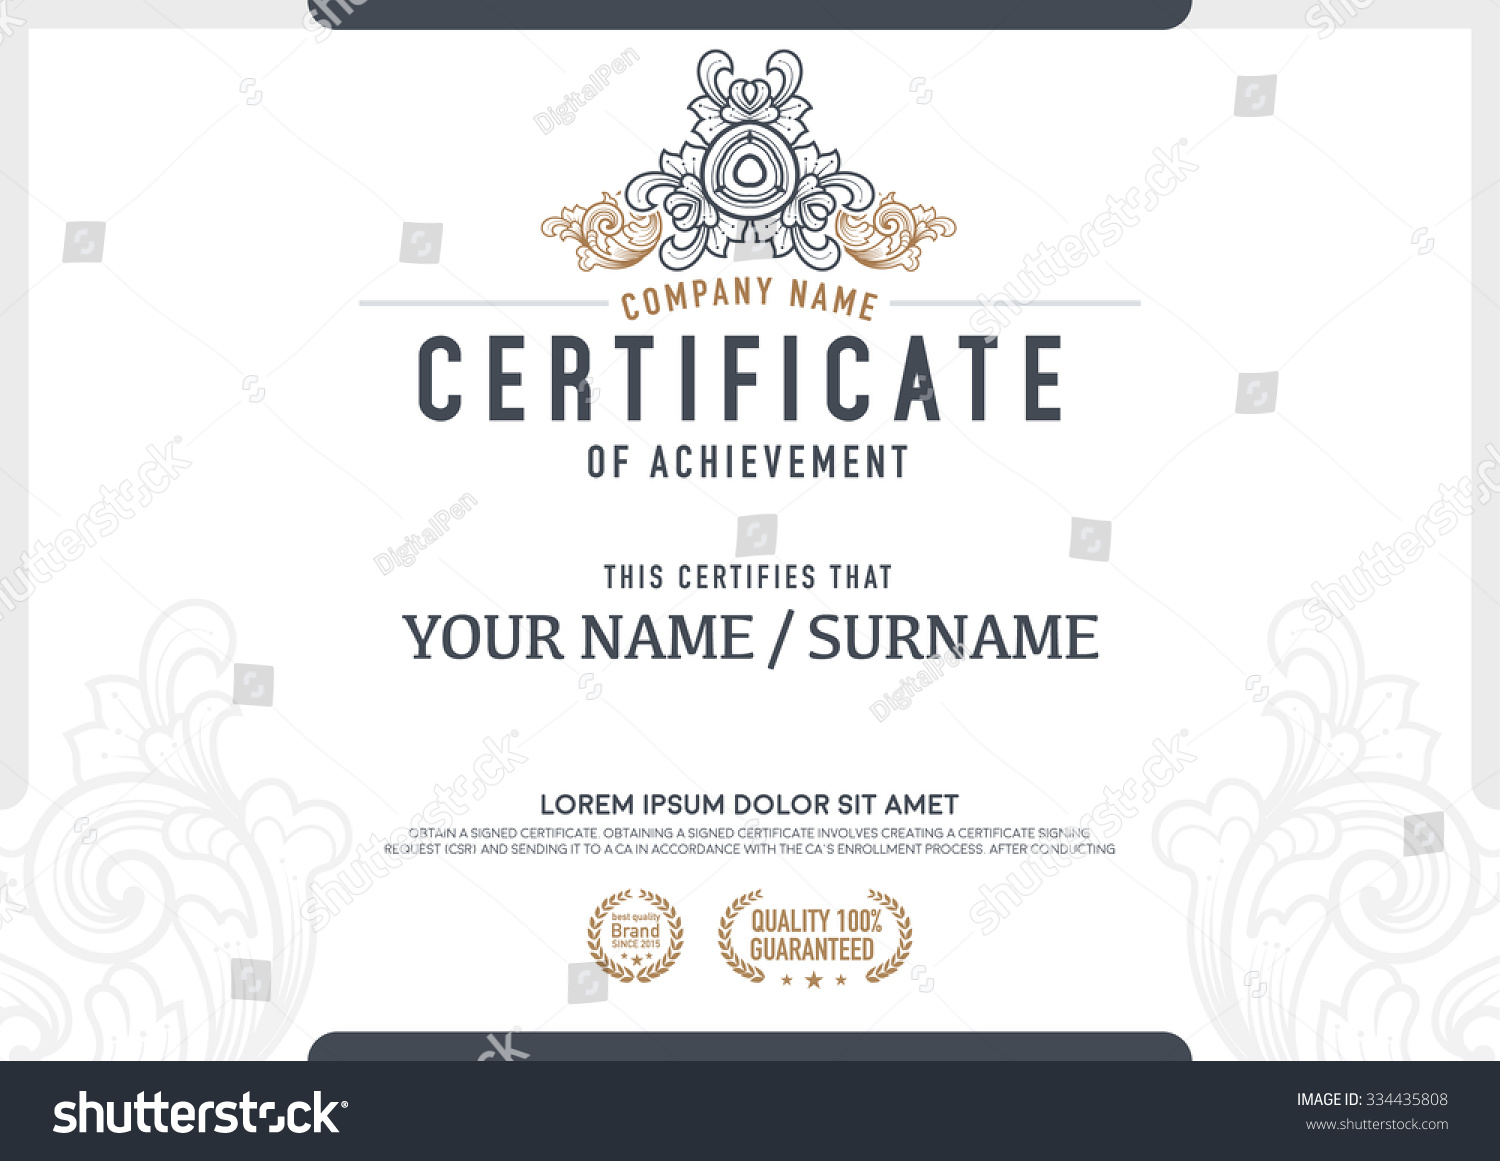 Thank You Certificate Wording Seating Chart Templates Concert Certificate  Of Appreciation Verbiage Landlord Verification Letter Stock